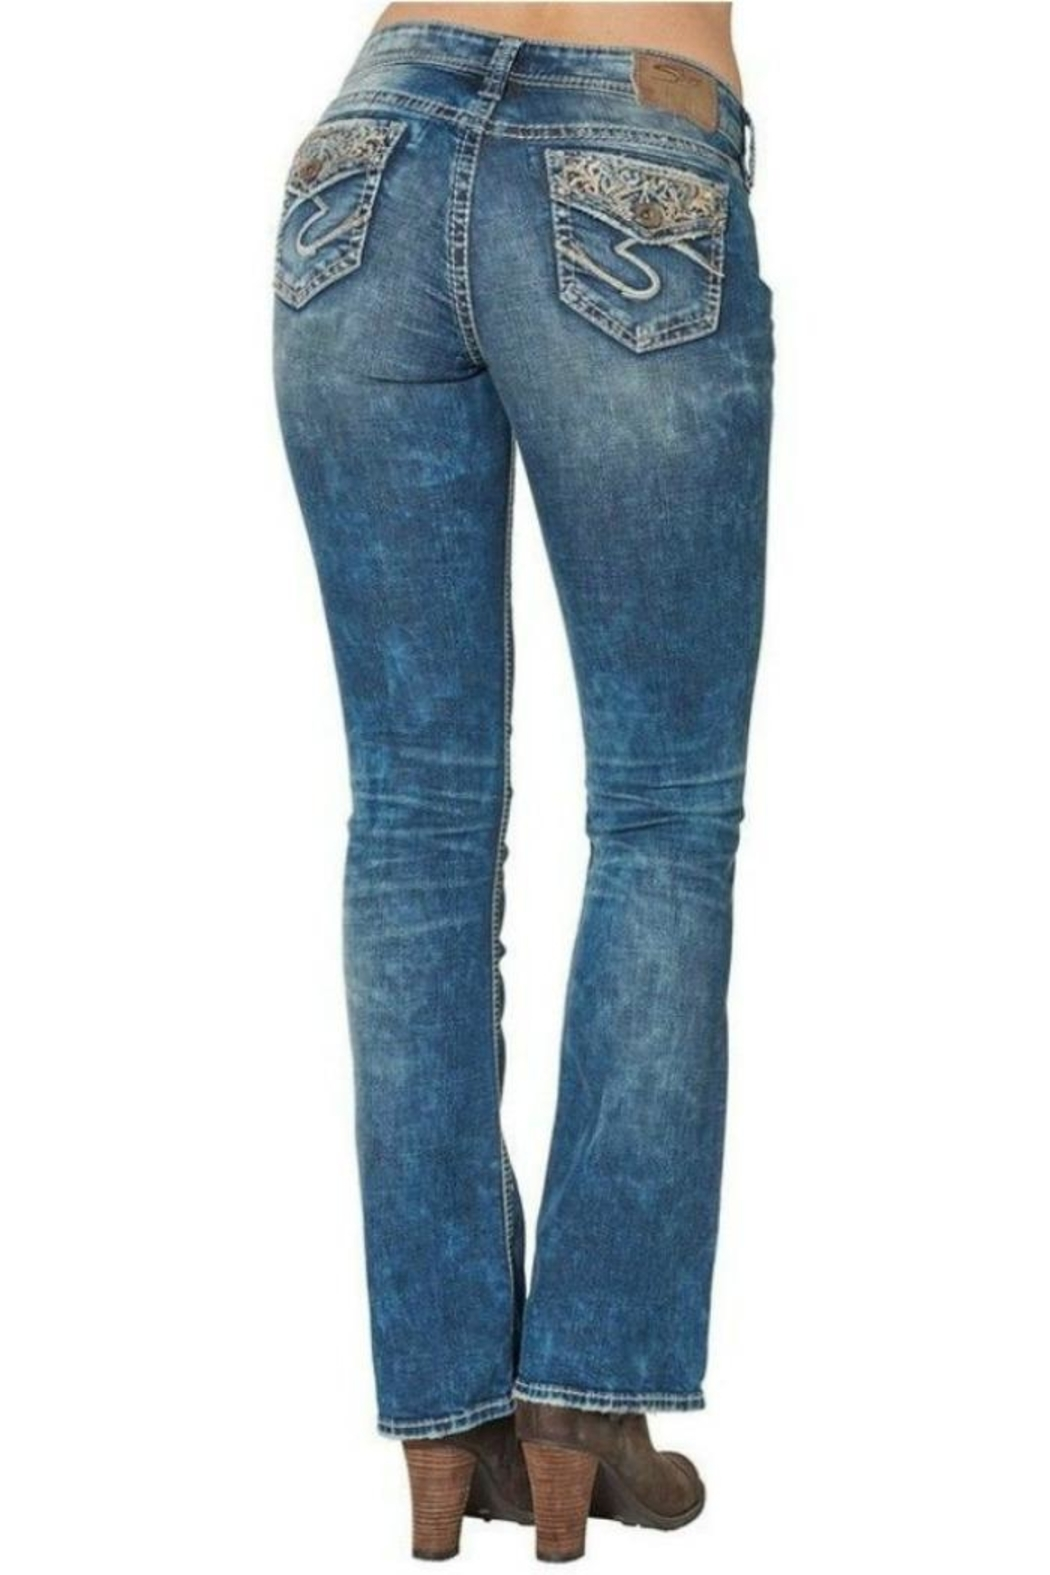 Silver Jeans Co. Boot Cut Jeans - Front Full Image